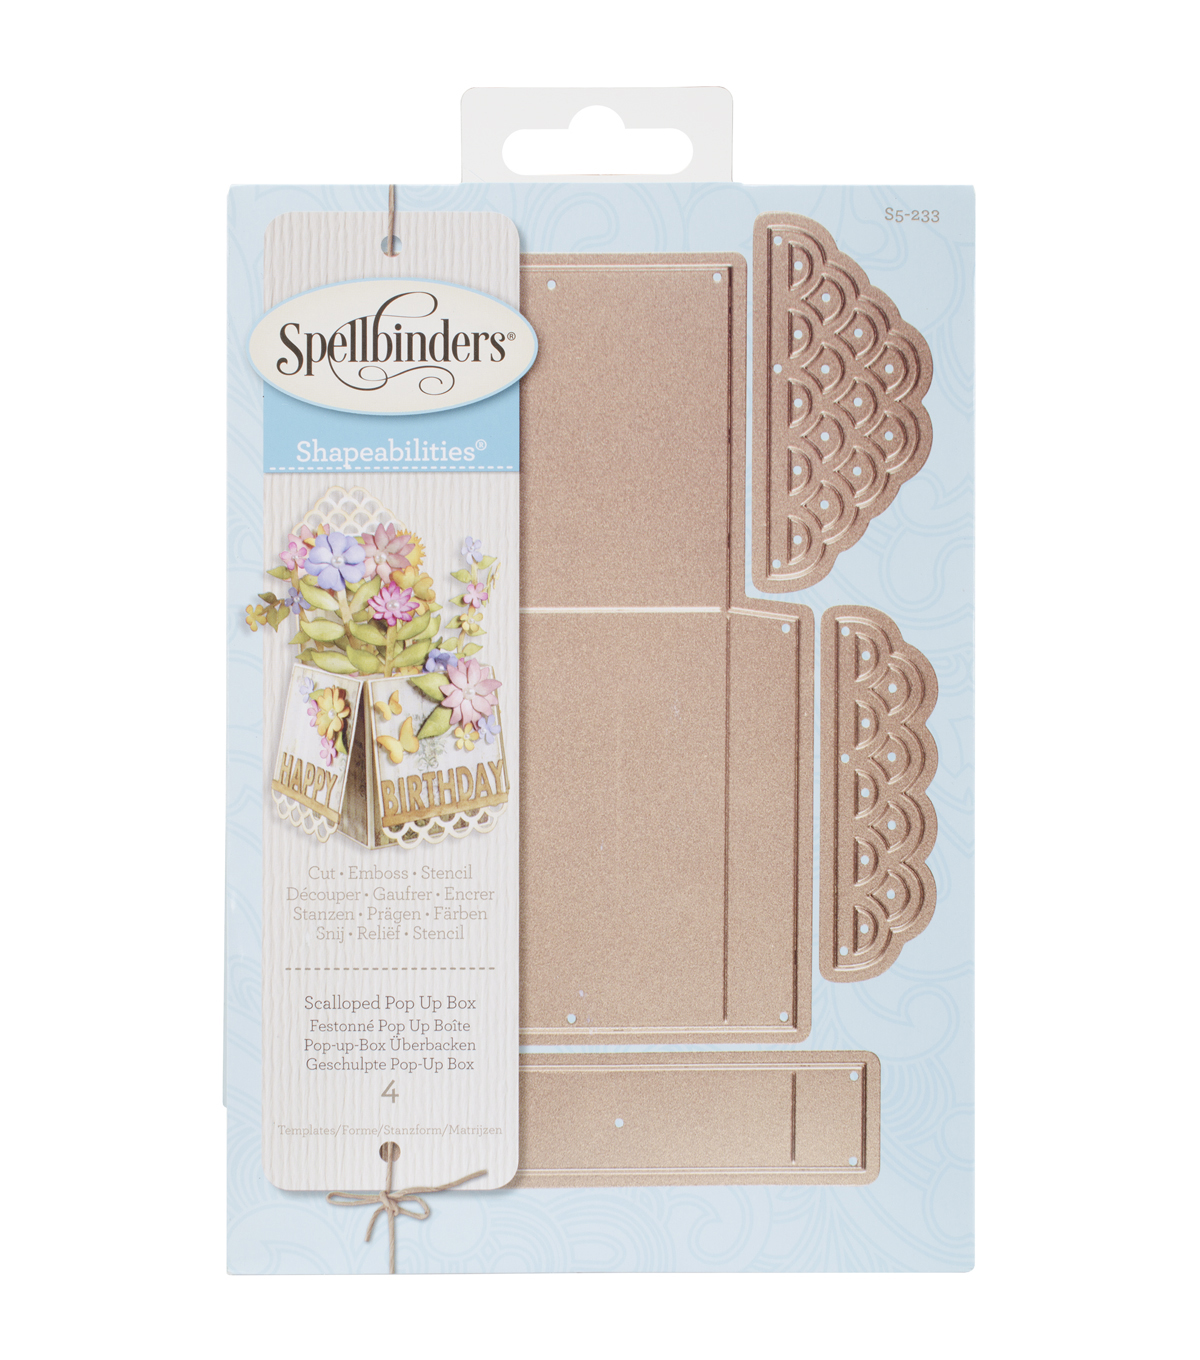 Spellbinders Shapeabilities Dies-Scalloped Pop Up Box